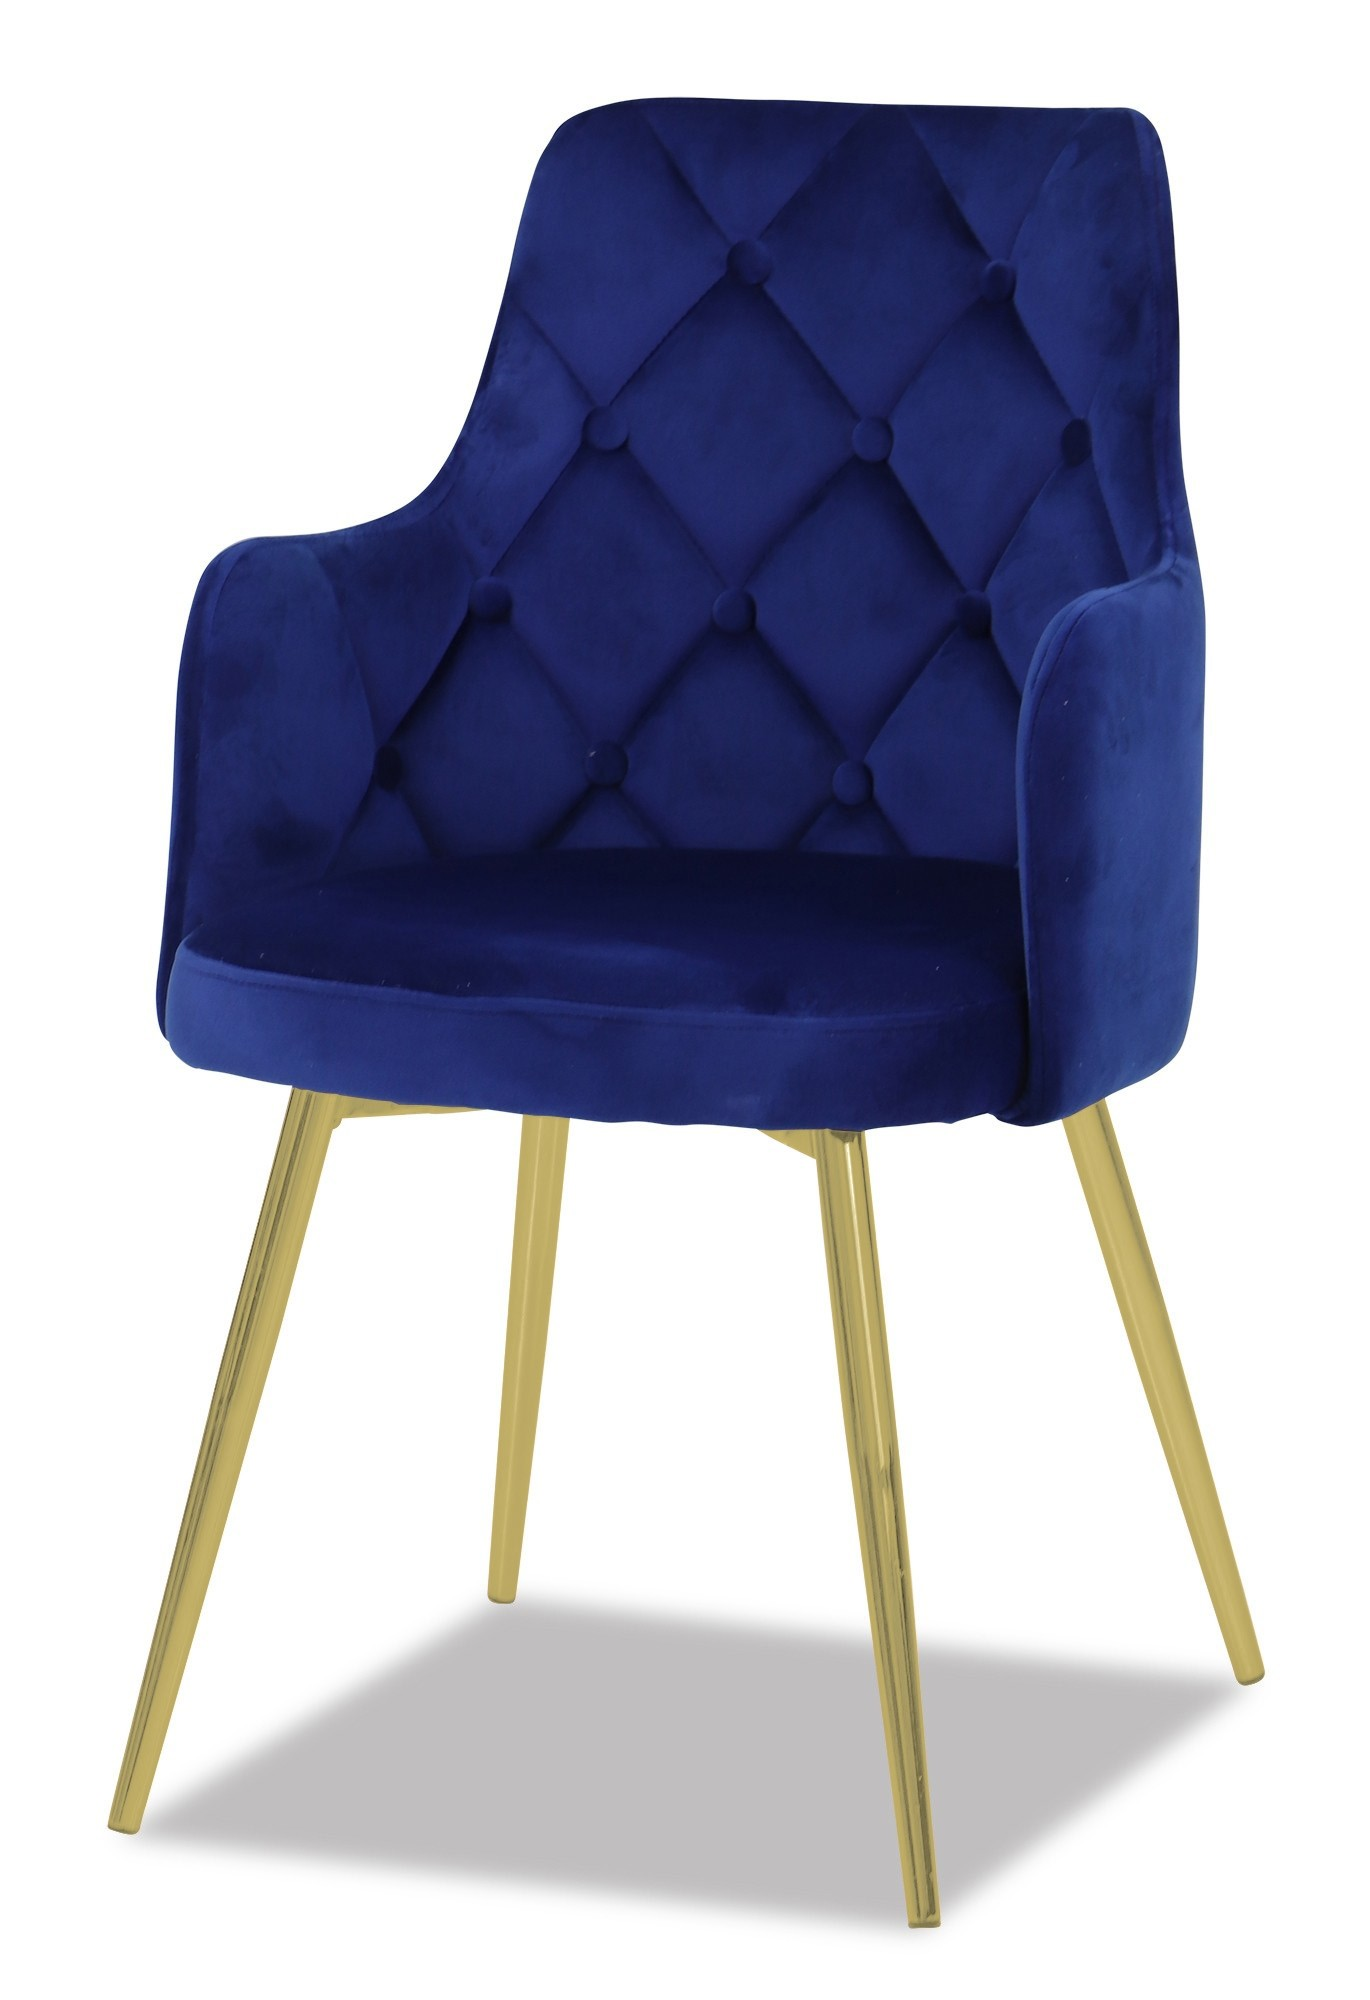 Cobalt Blue Chair Laurie Chair With Gold Legs In Royal Blue